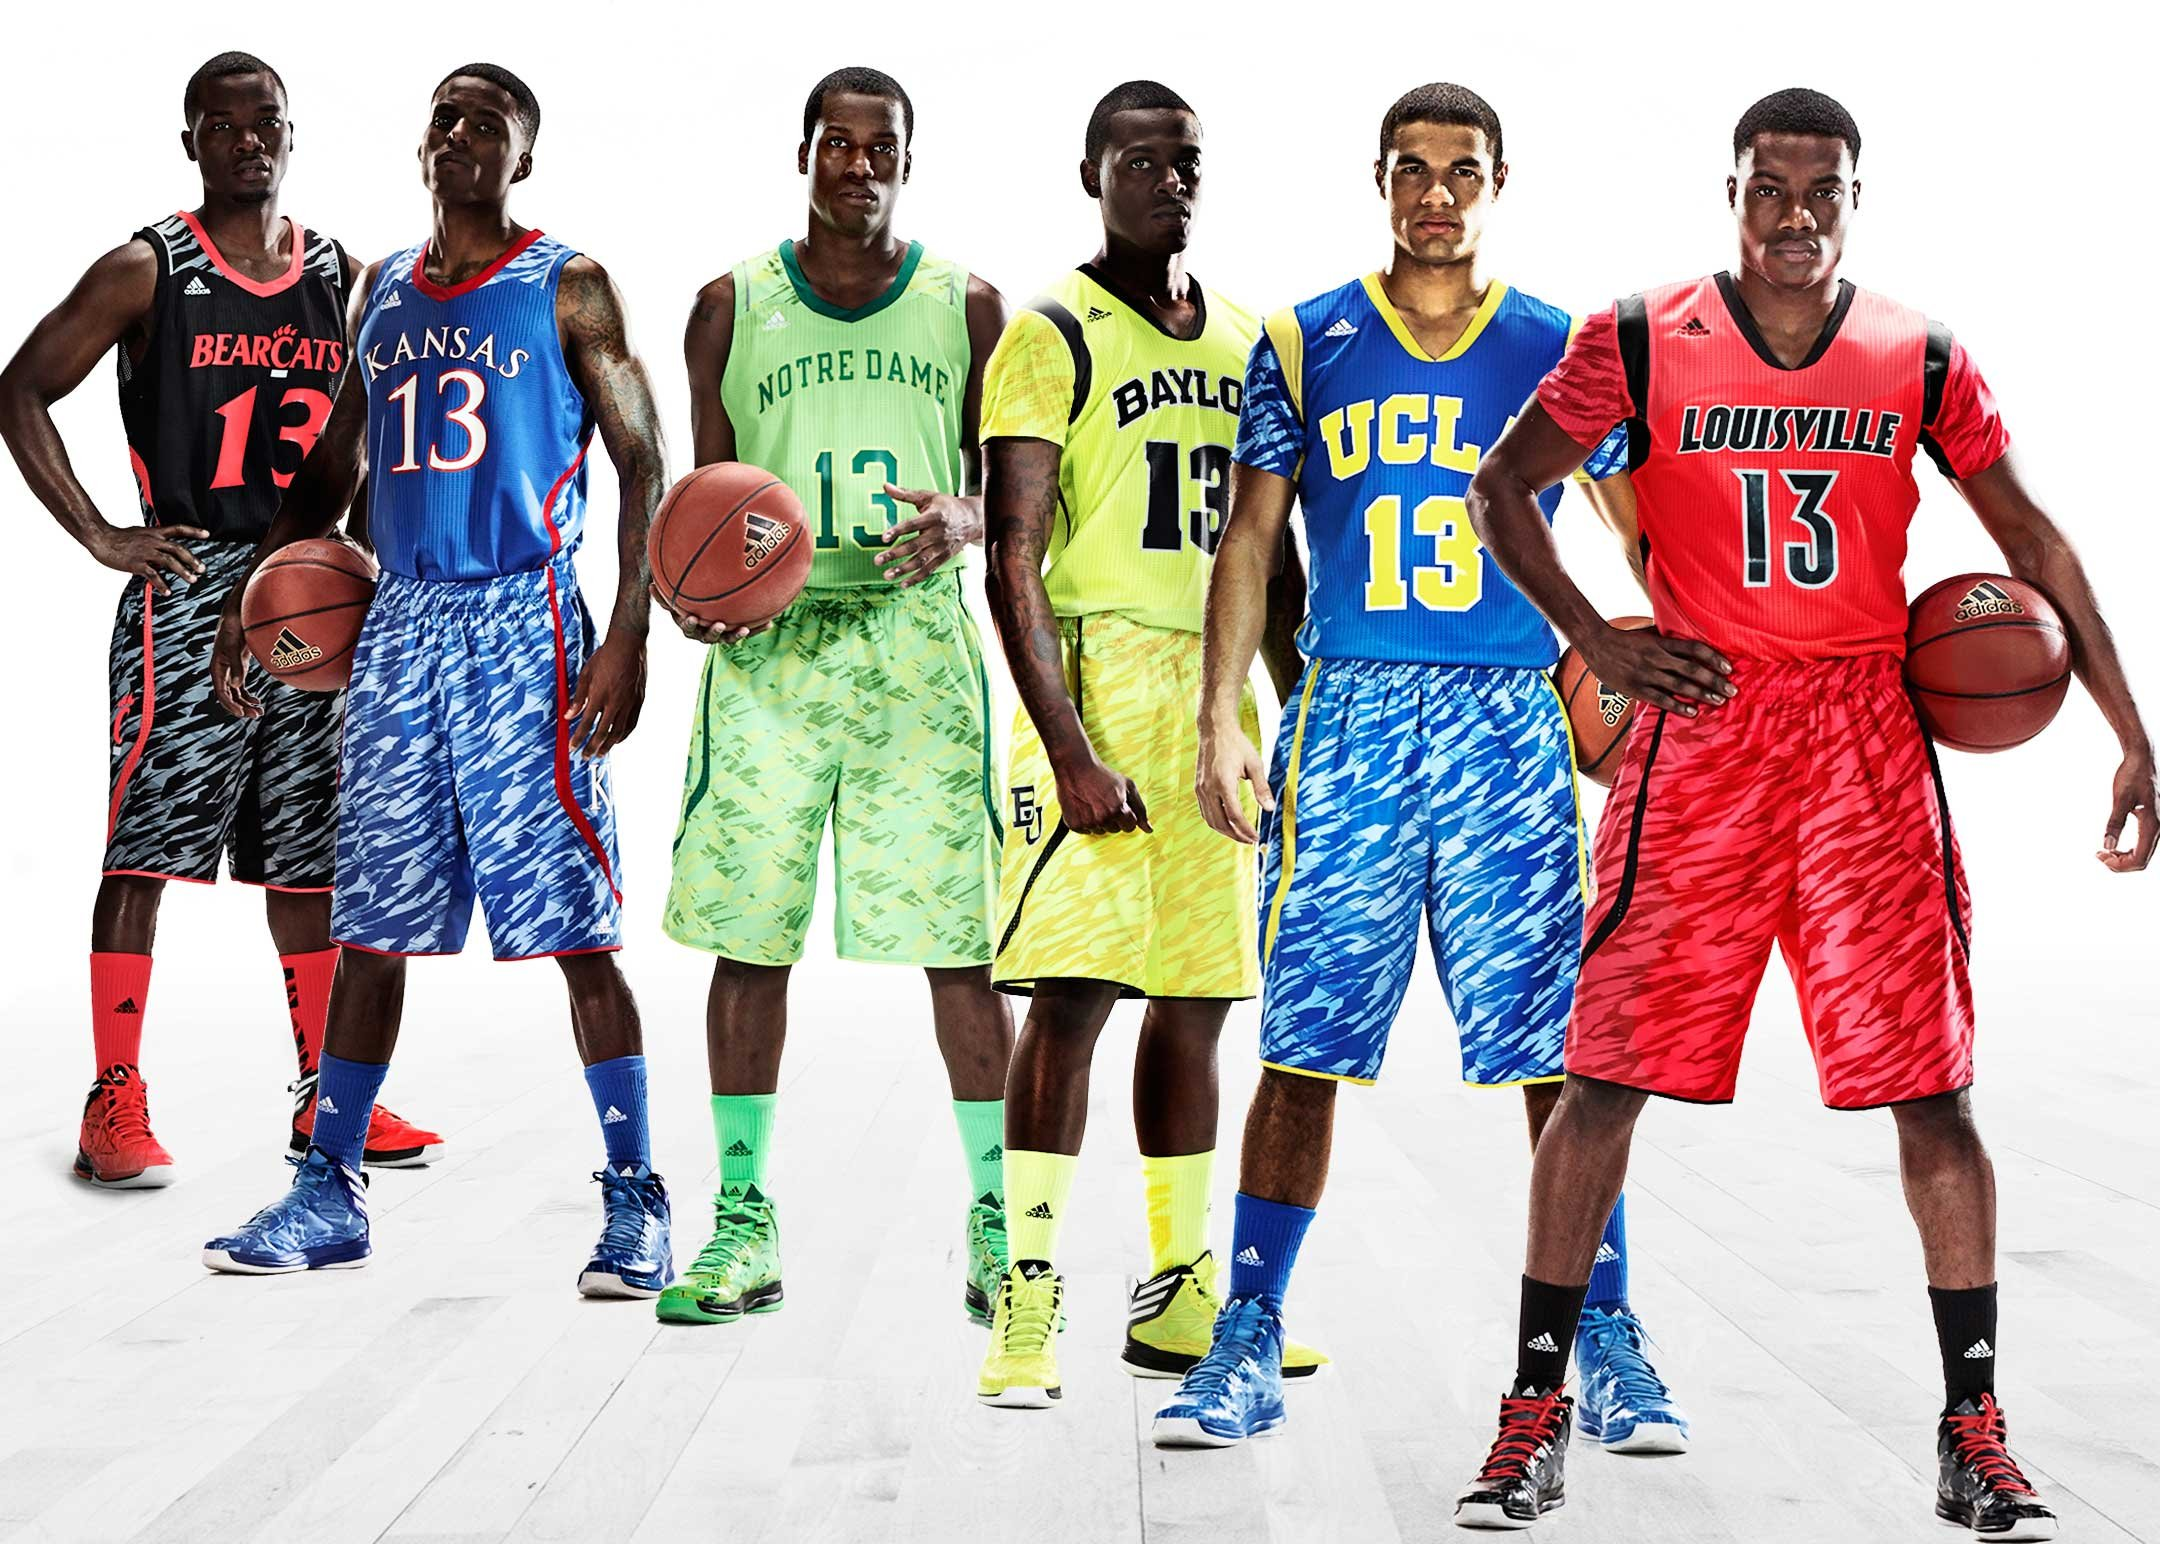 UCLA Bruins Basketball: Adidas Reveals New Sleeved ...